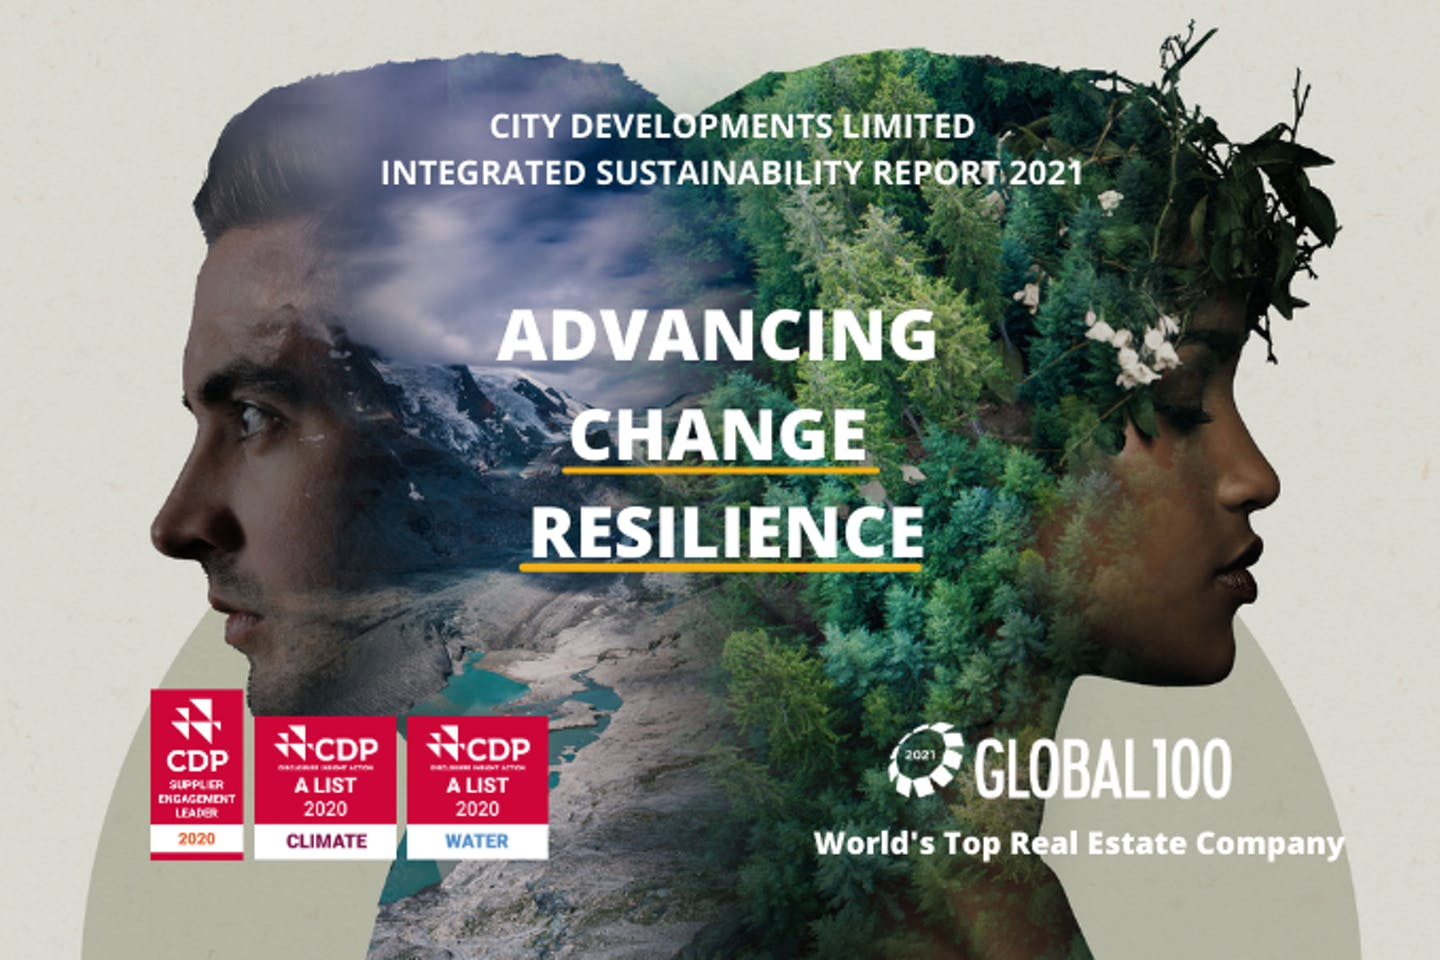 CDL Integrated Sustainability Report 2021 spotlights its adaptable and resilient ESG strategy